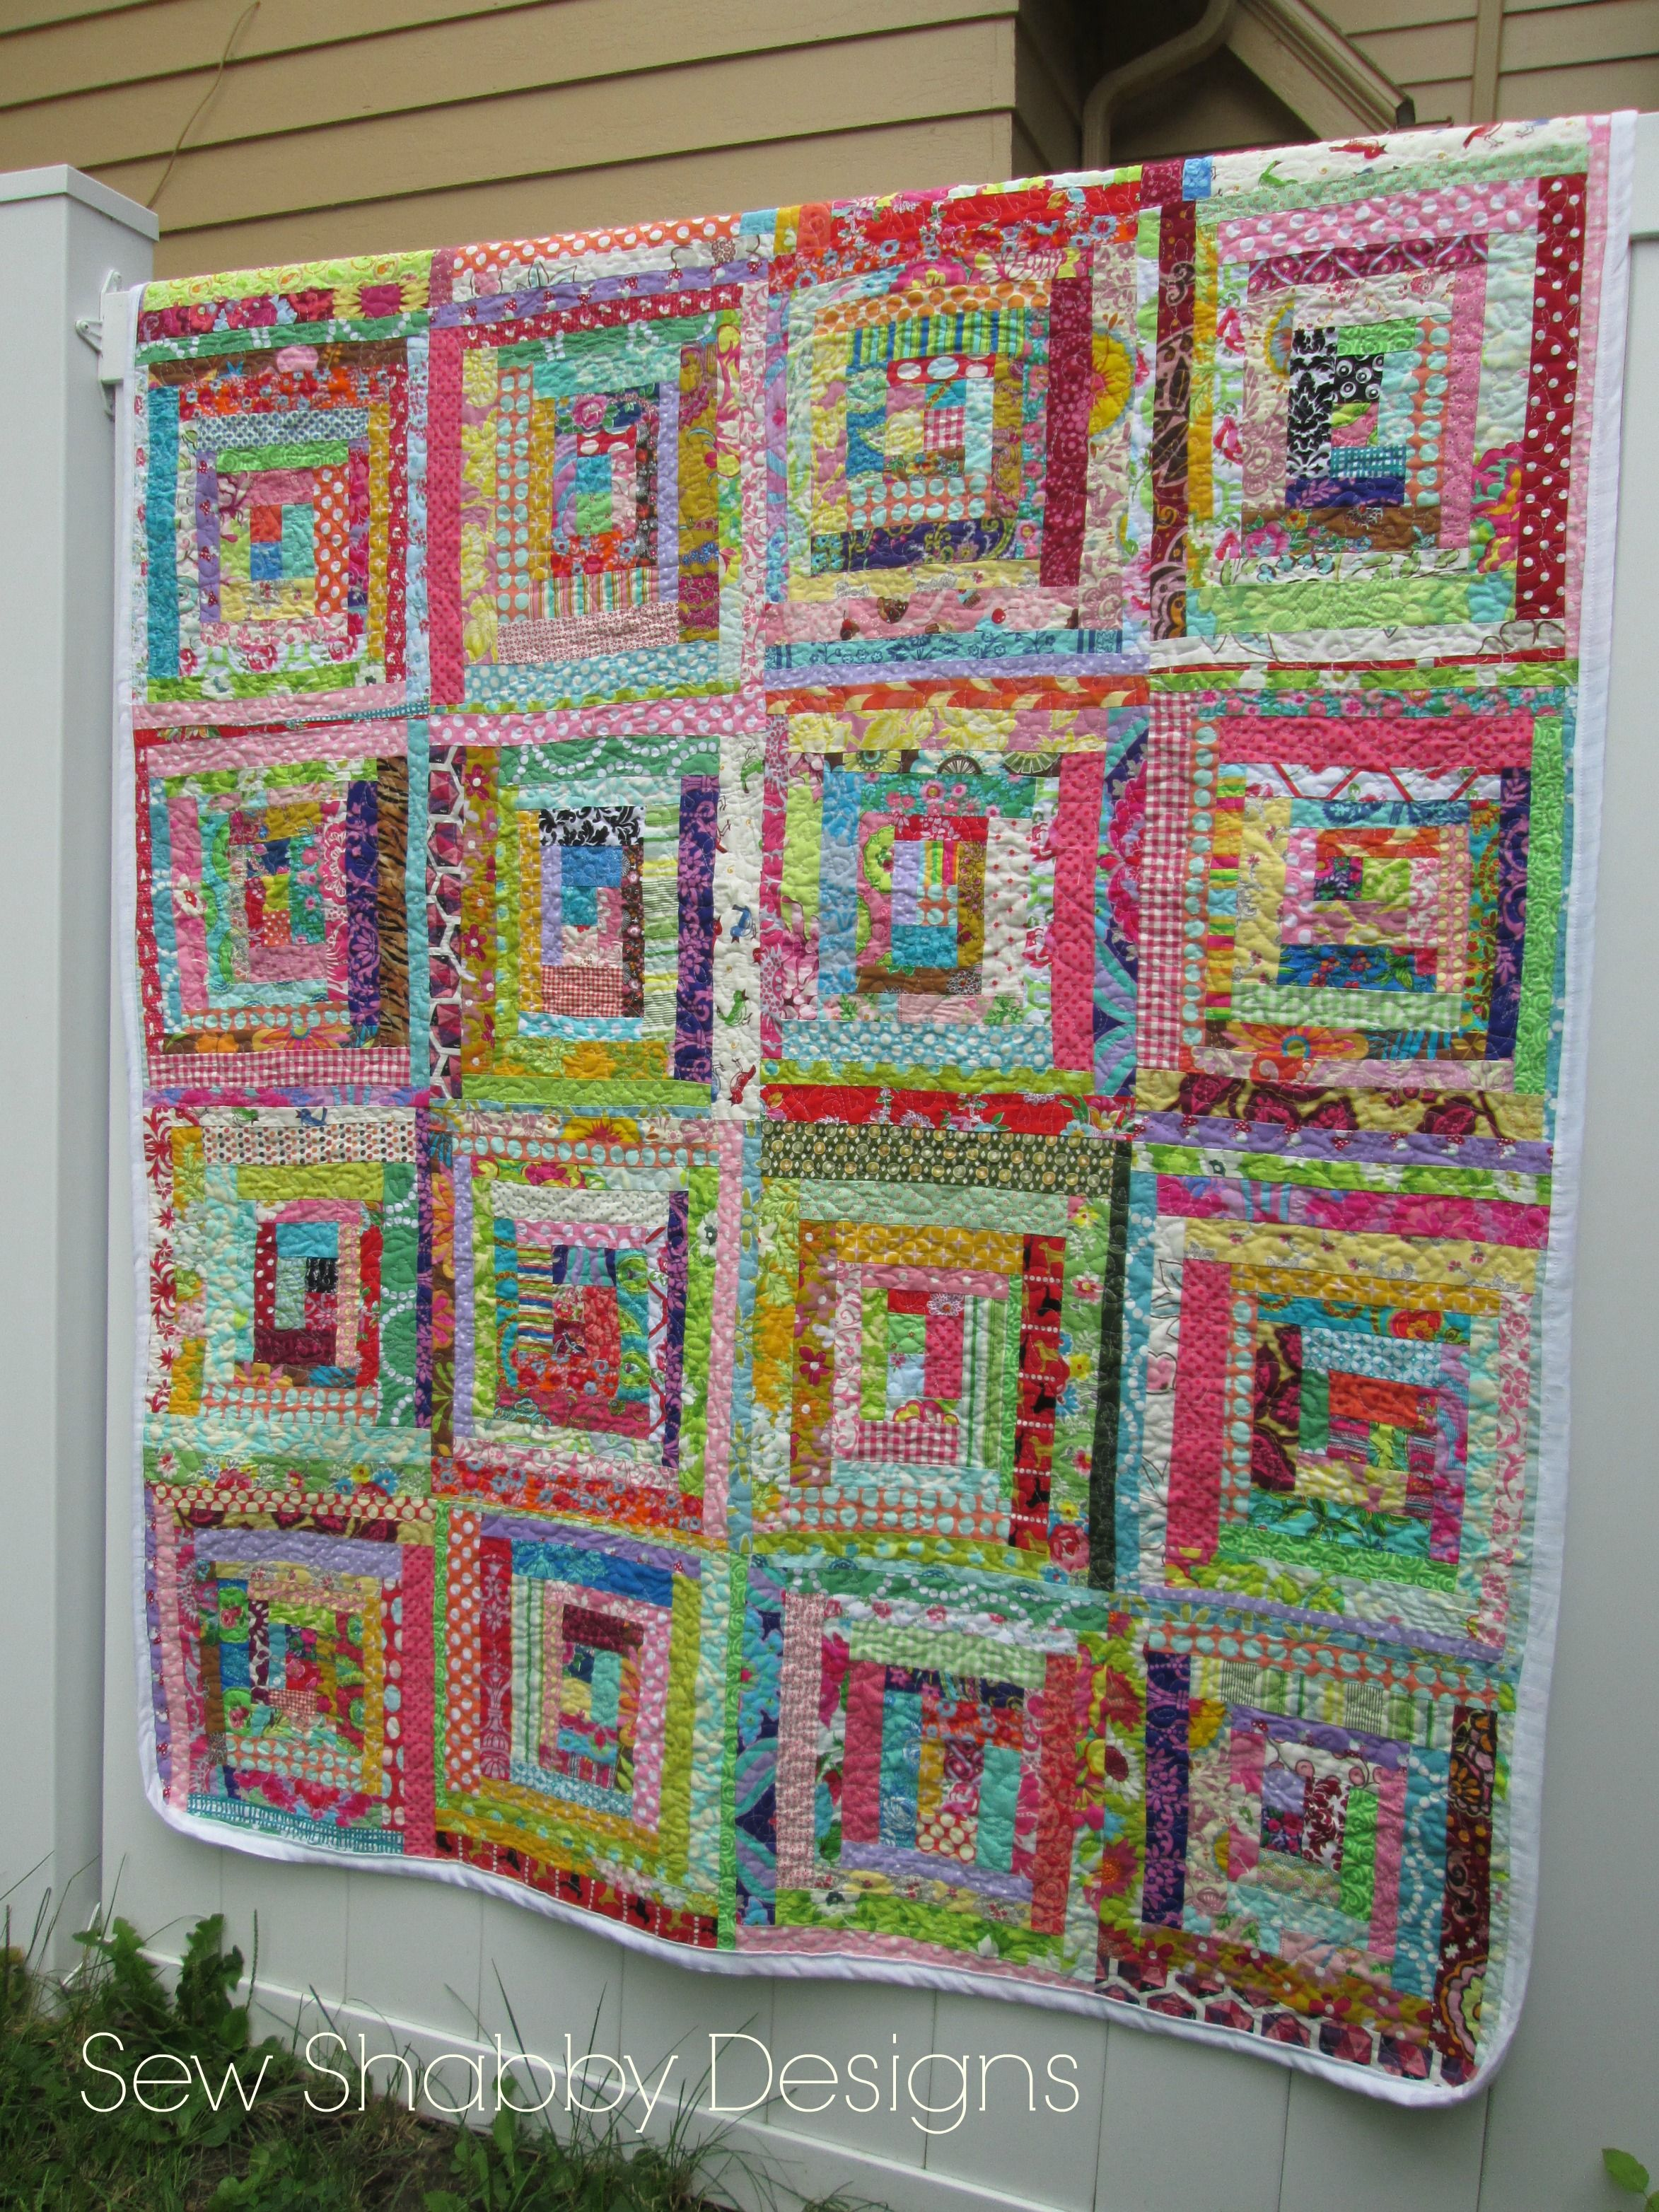 Scrappy Log Cabin Quilt By Sew Shabby Designs Sewshabbydesigns Log Cabin Quilt Quilts Log Cabin Quilts